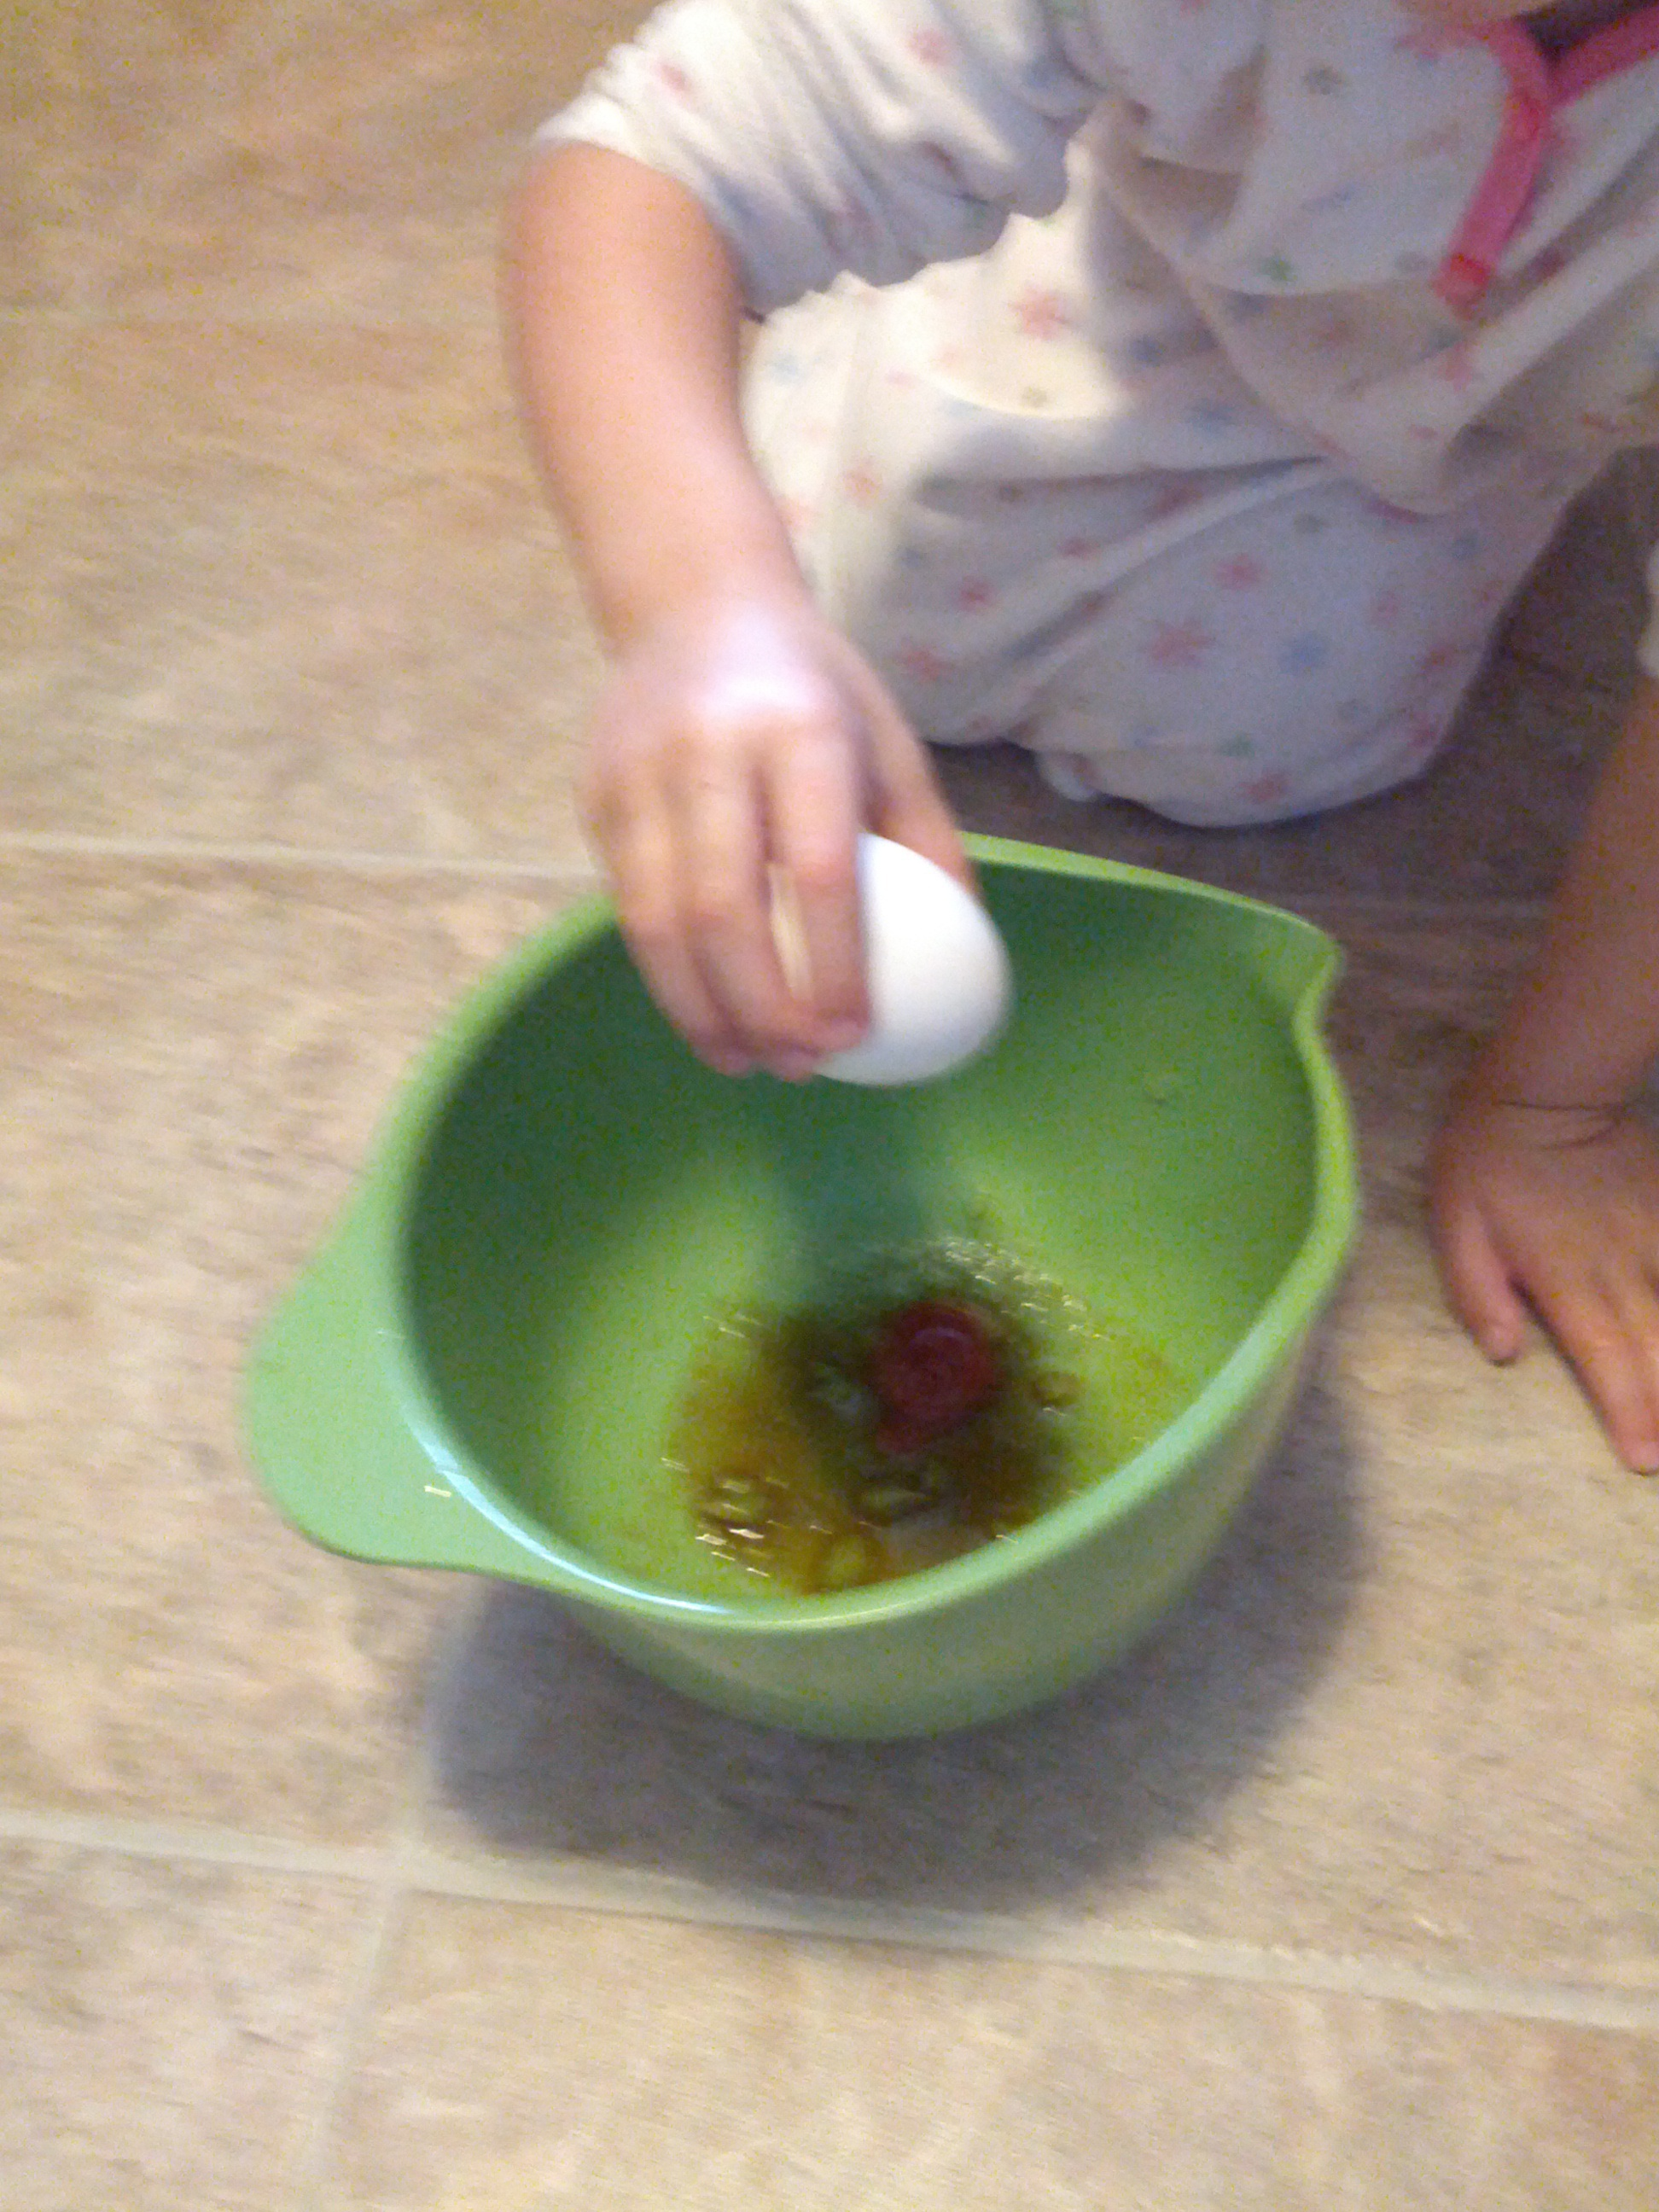 Adding an egg to the other wet ingredients.